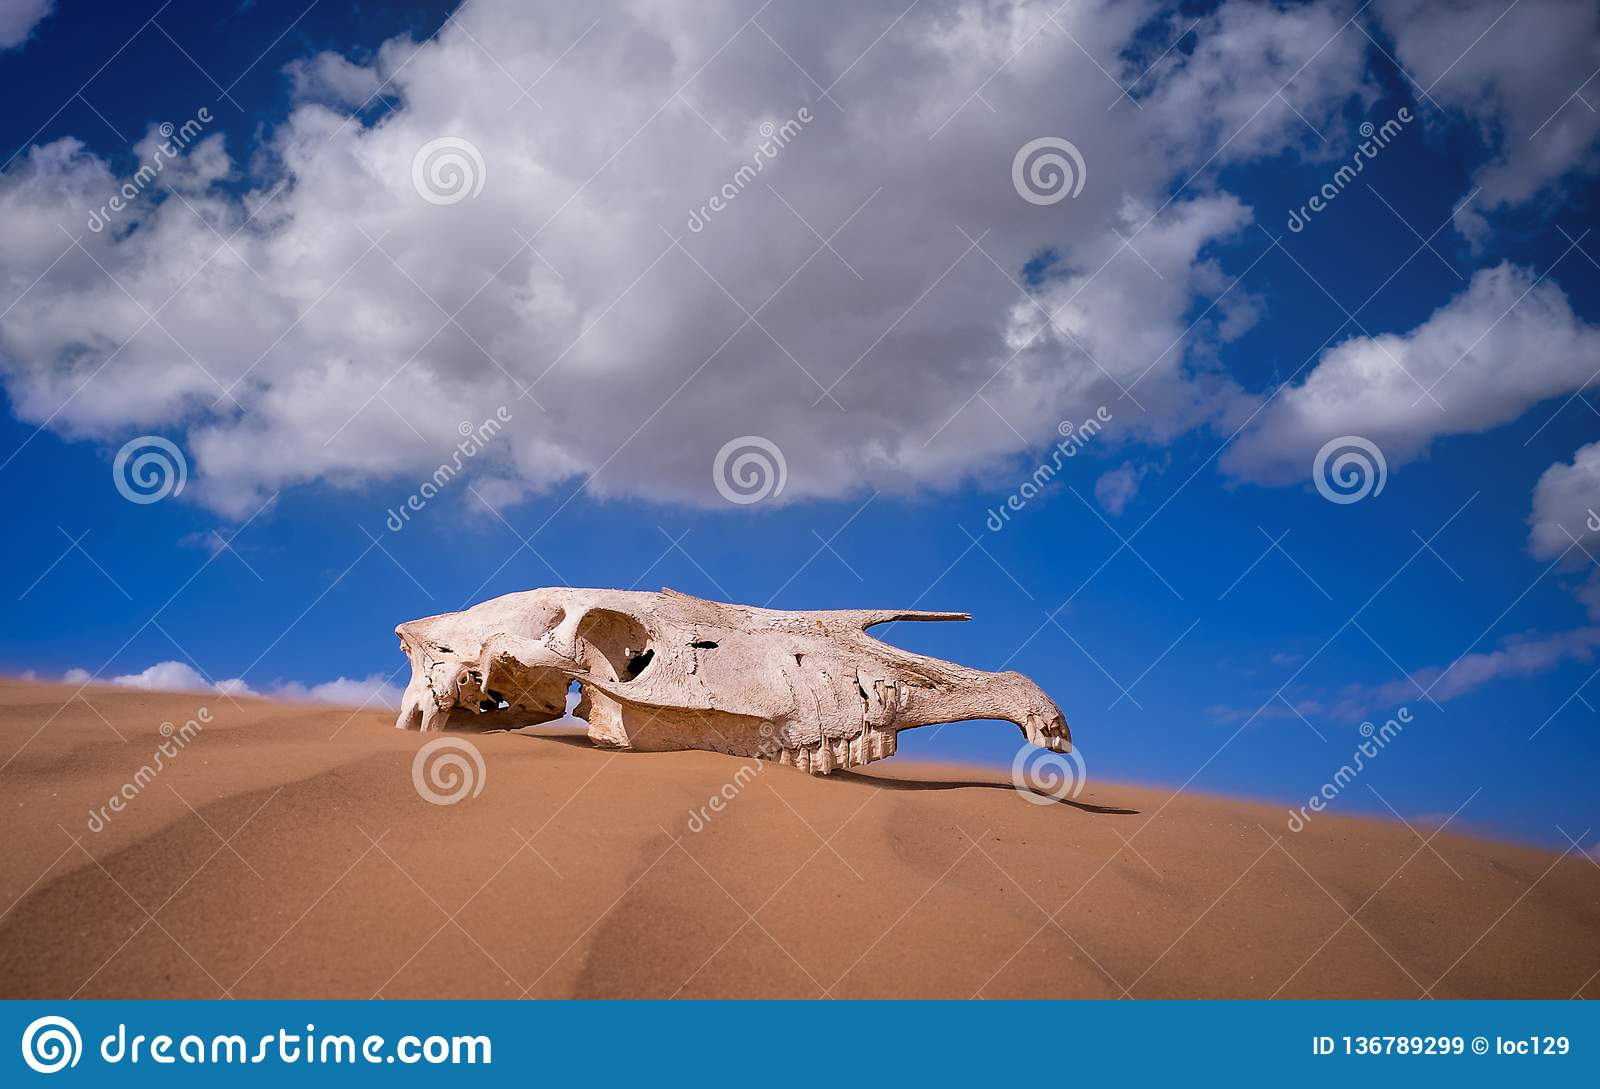 Saiga skull in the desert. animals of the red book. Sunny day